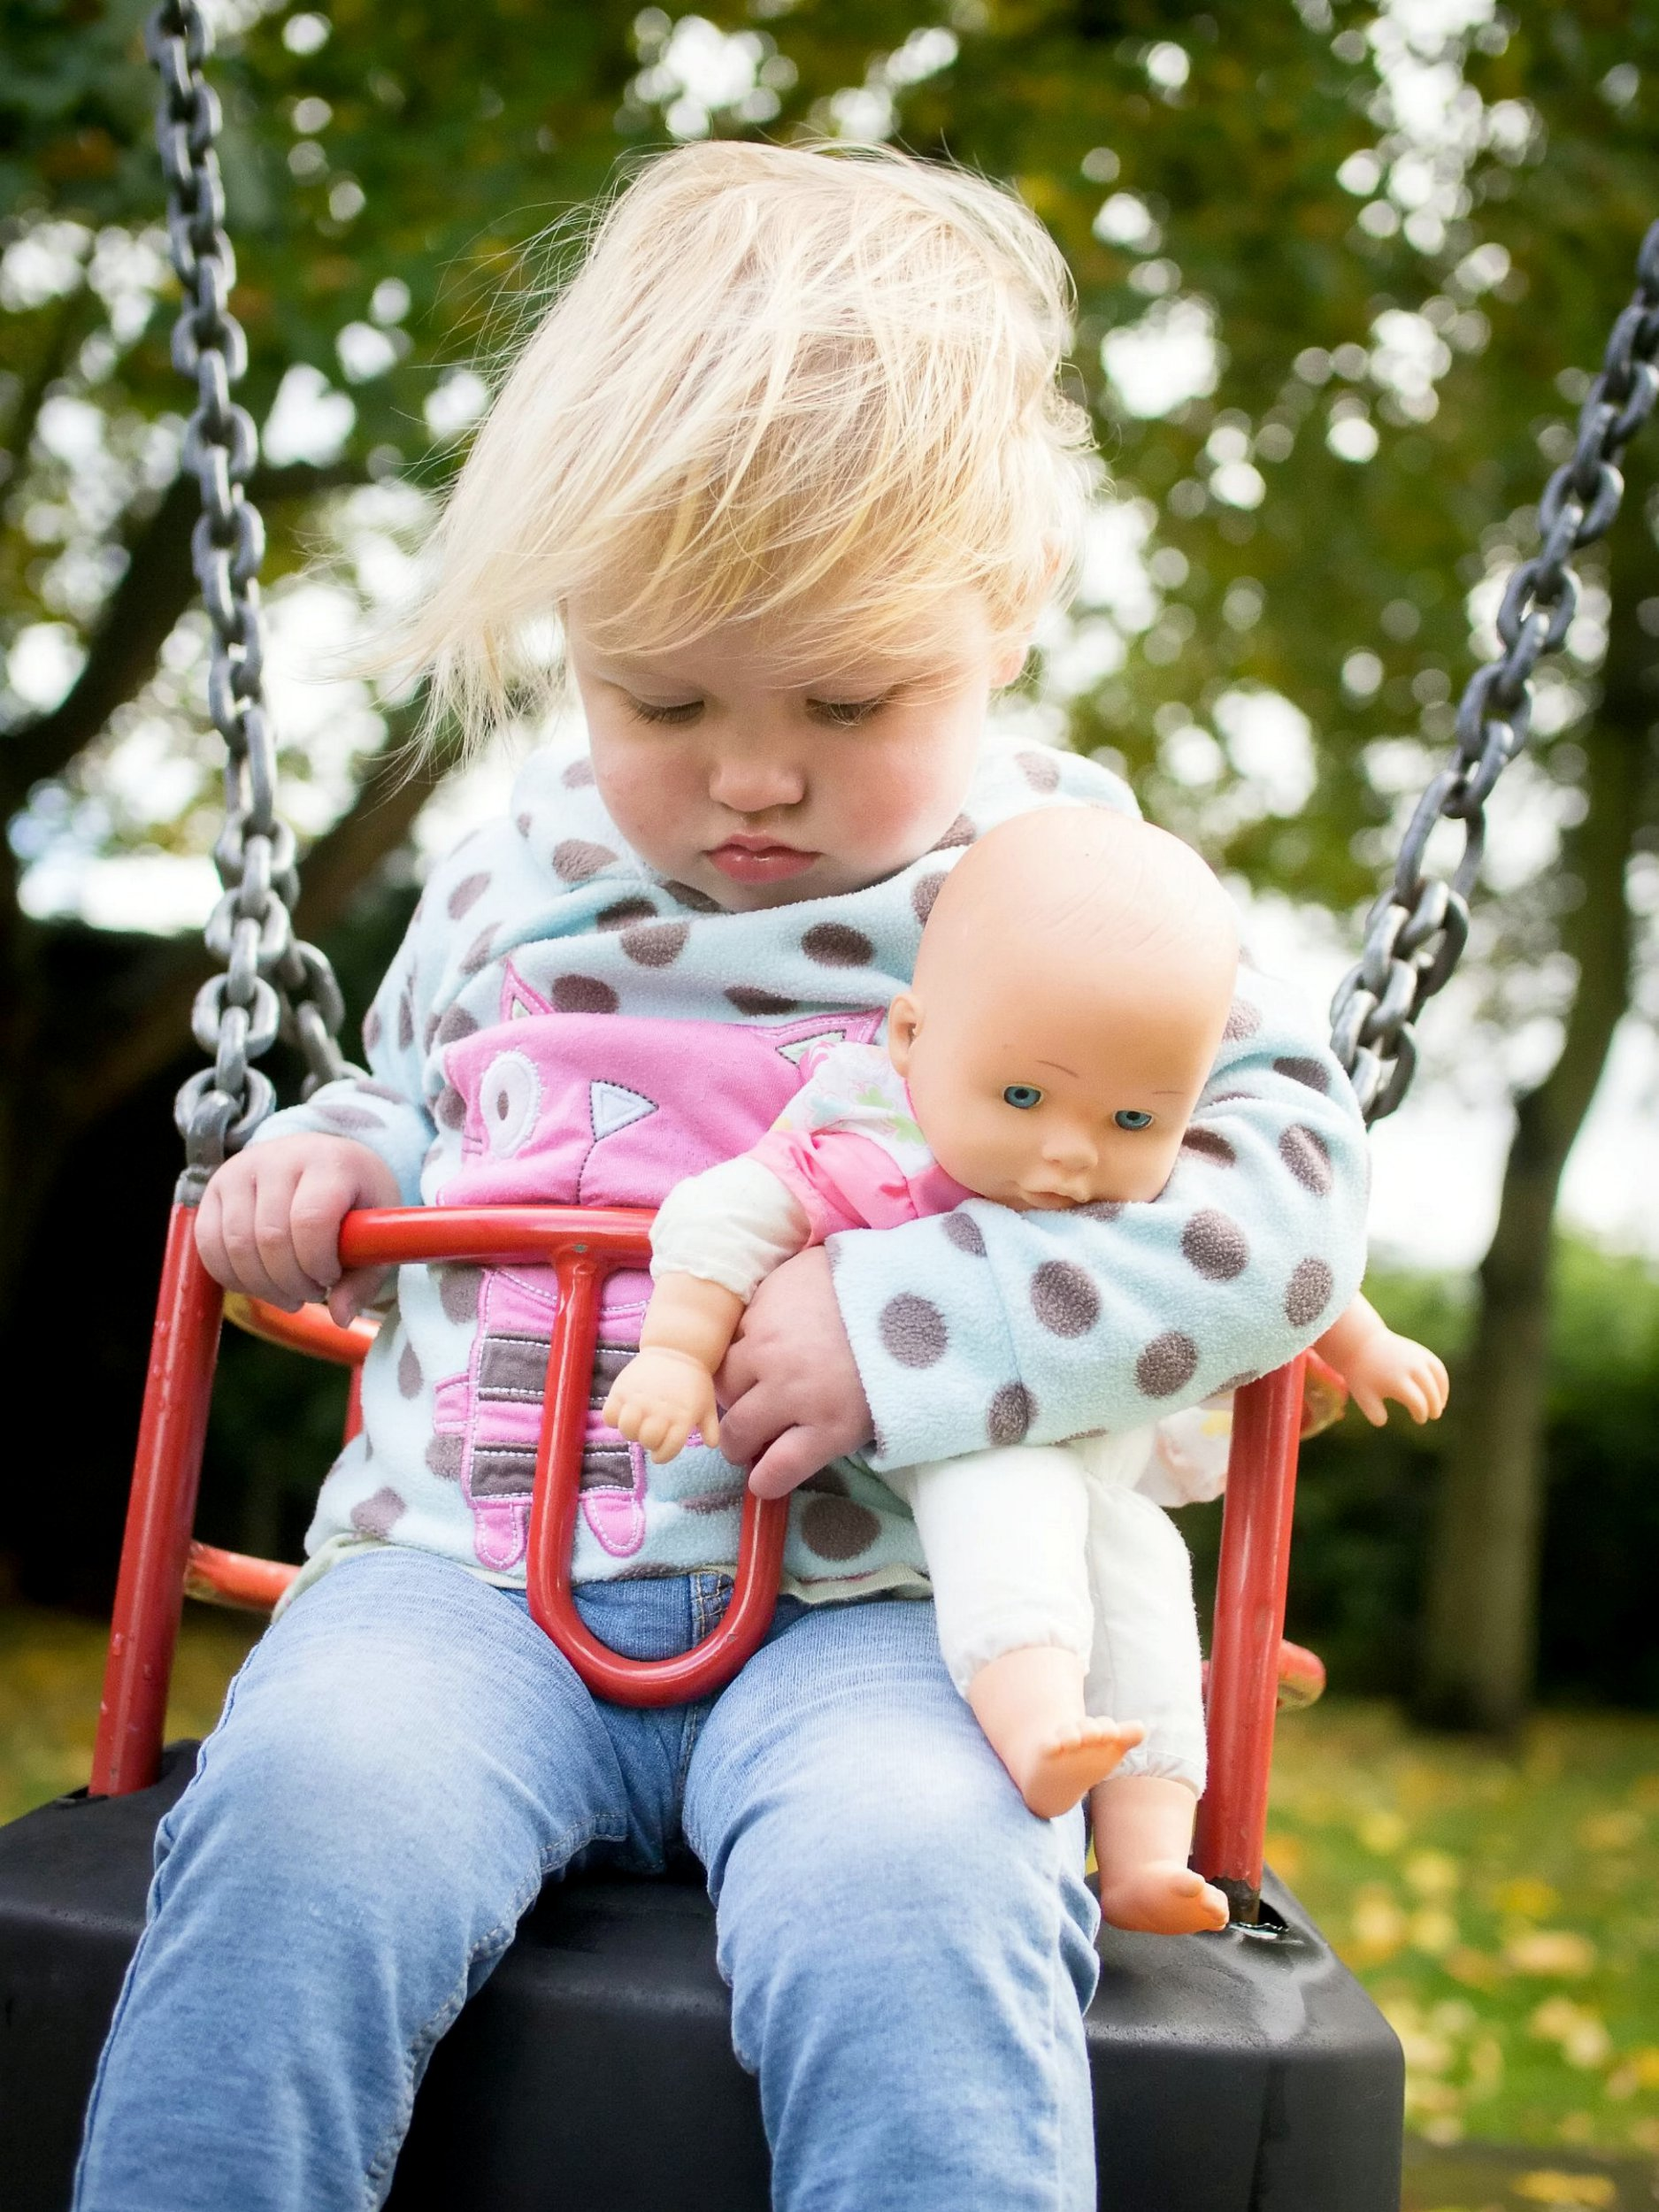 A dad snapped a cute photo of his toddler falling asleep in her swing (PICTURED) - not realising that her tiredness was a symptom of undiagnosed cancer. See SWNS story SWMDcancer. Dave Fletcher took the picture of his daughter Izzy when she was 23 months old - just a few weeks before she was given the shock diagnosis of leukaemia. Dave and wife Vicky, from Claines, Worcs., took Izzy to the GP in January 2017 when she came out in a strange rash on her leg. They were advised to come back several days later for blood tests if the rash had not gone, and to take her straight to hospital if it got worse. But by the next morning, Izzy?s rash had spread and she then developed a temperature, so her parents took her to Worcester Royal Hospital. Here, she was diagnosed with leukaemia the same day.